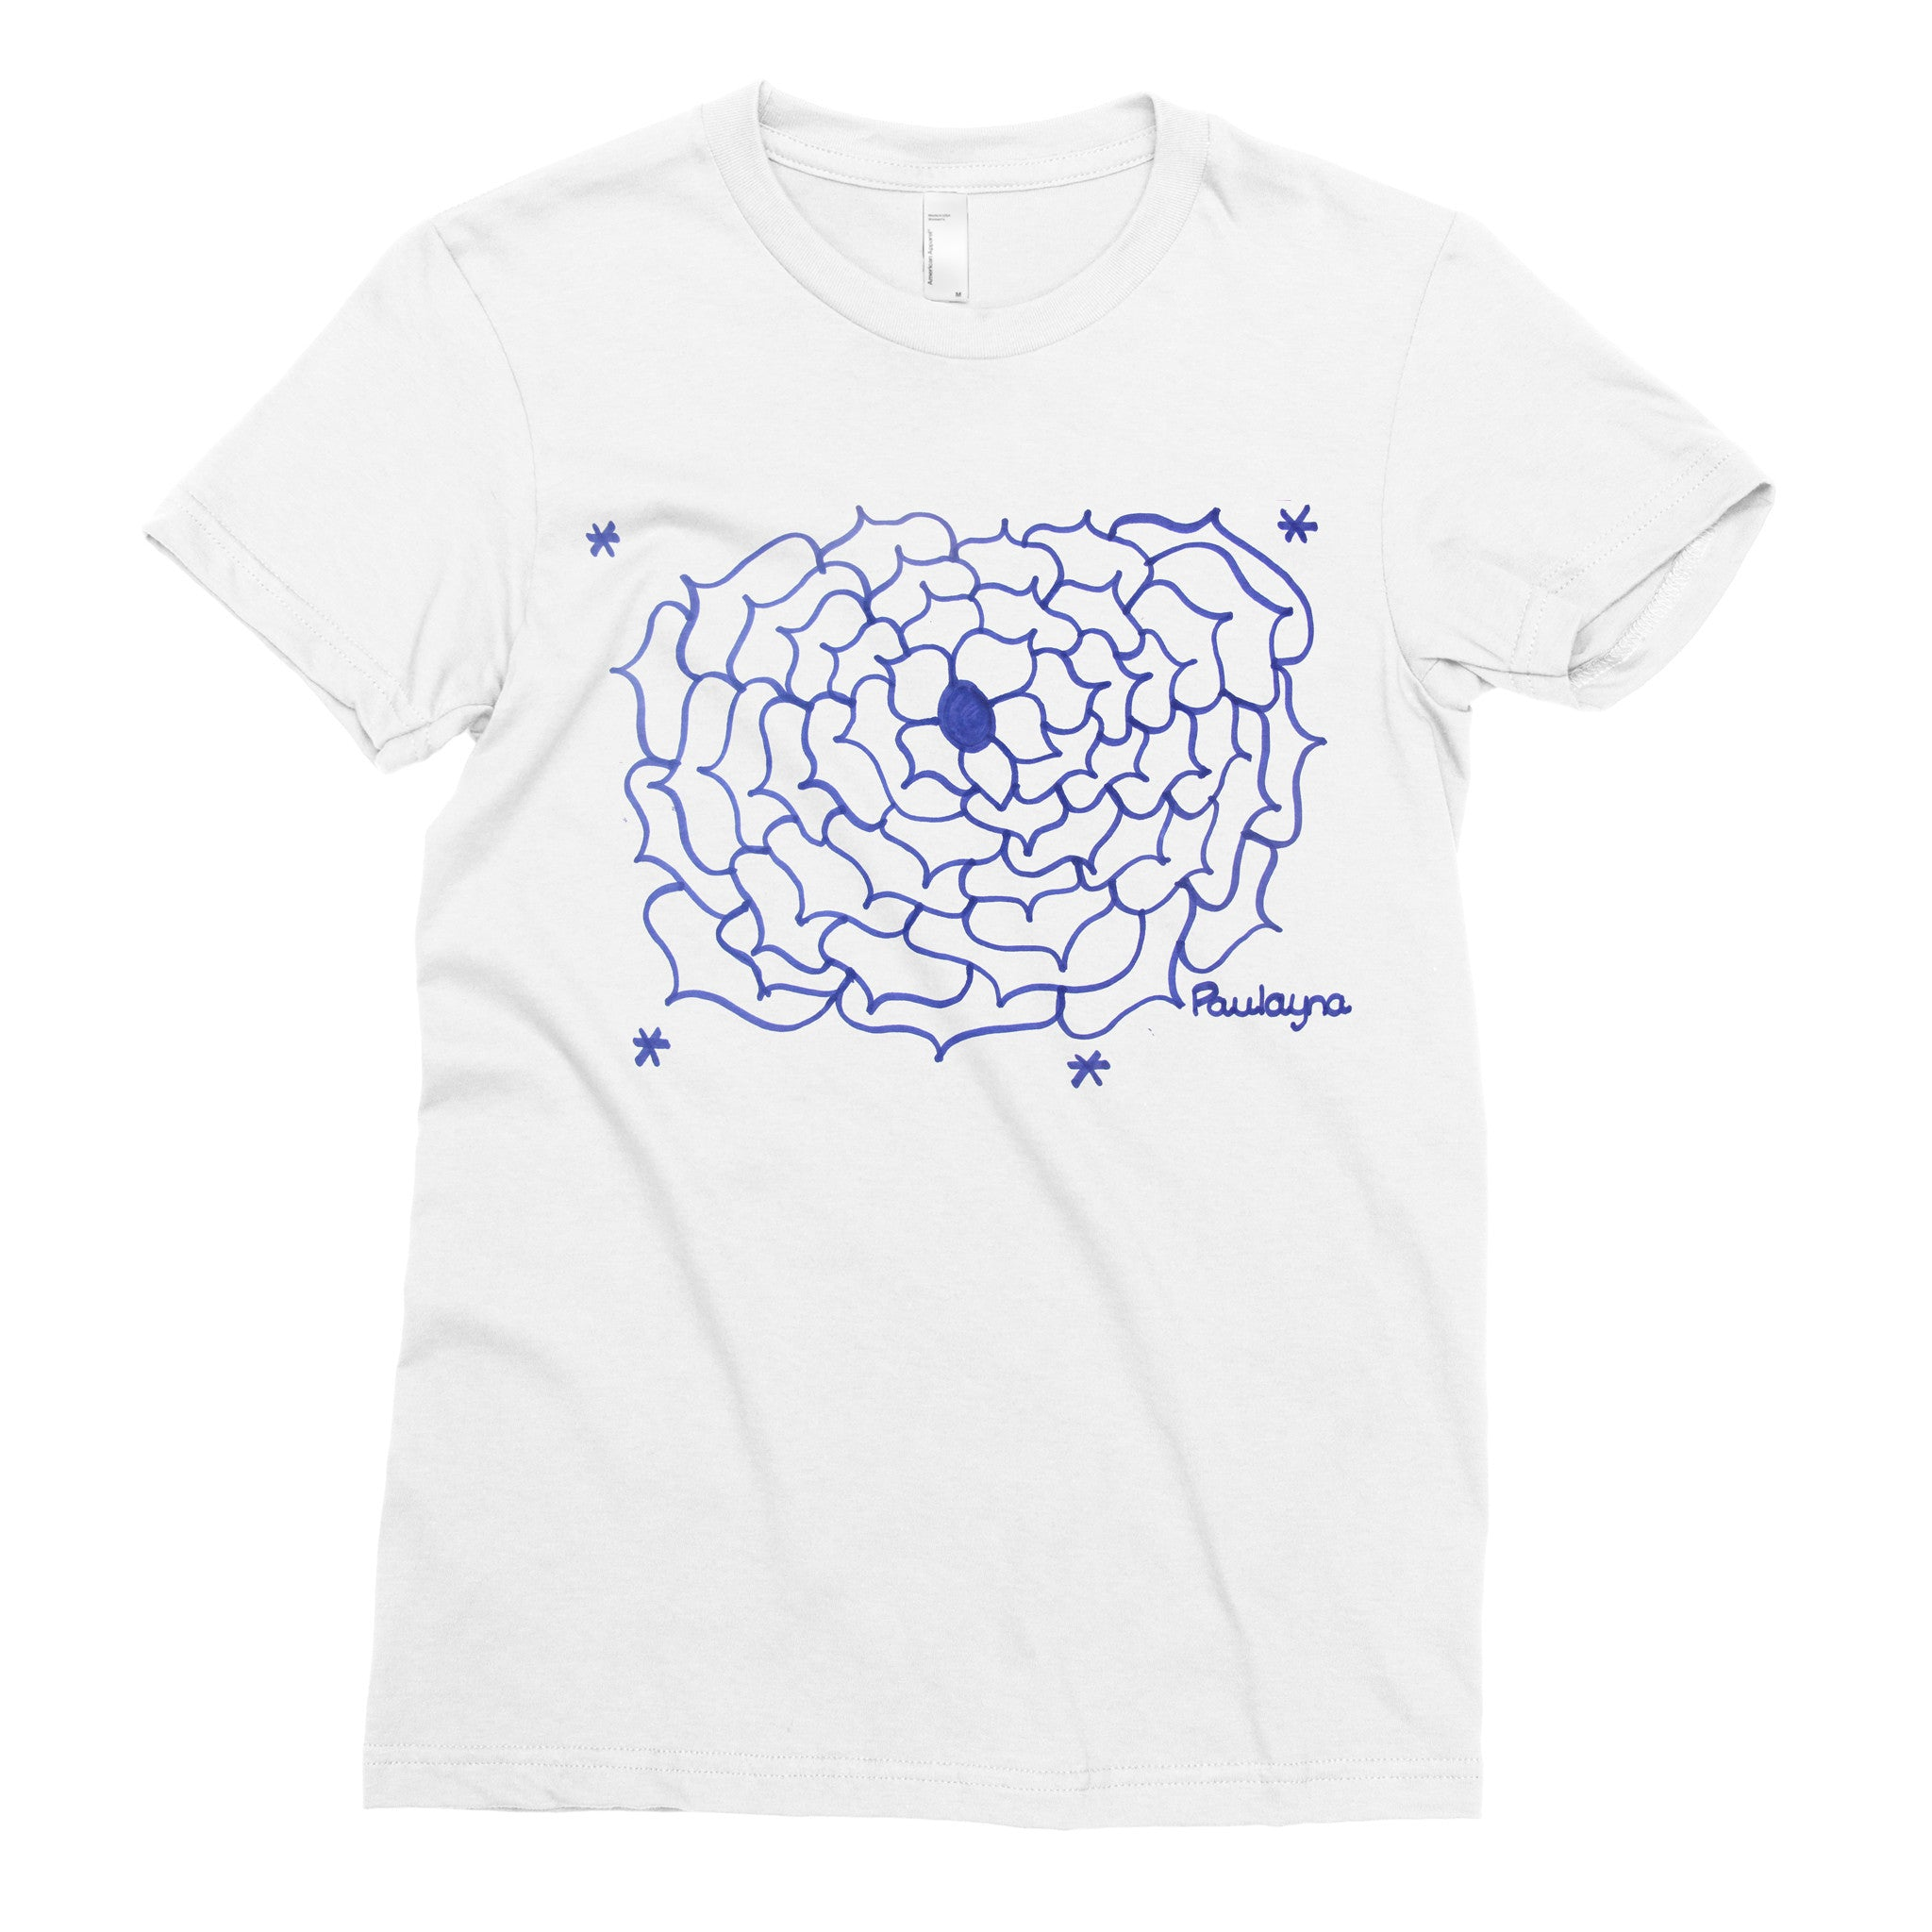 The Flower Design - Adult T-shirt - Rightside Shirts